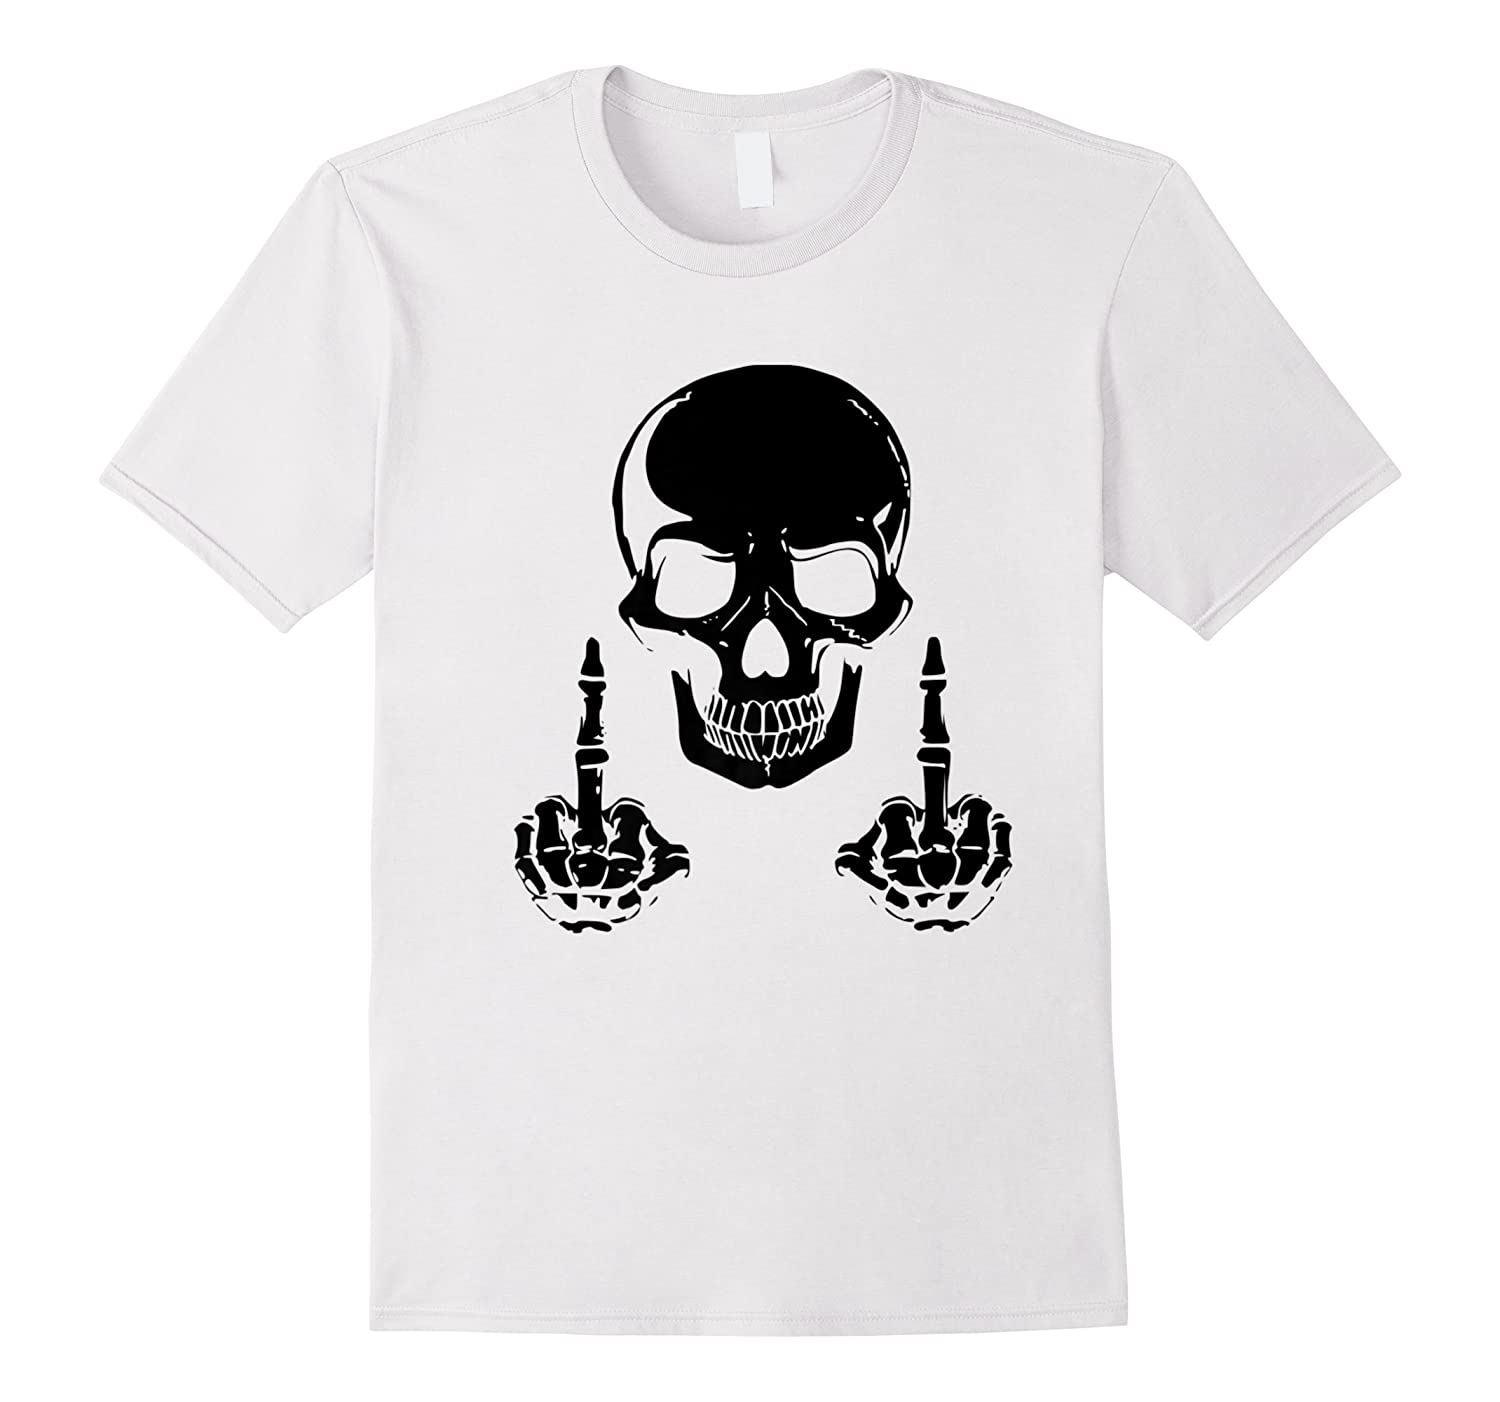 Super Fun And Scary Halloween Costumes. Premium T-shirt